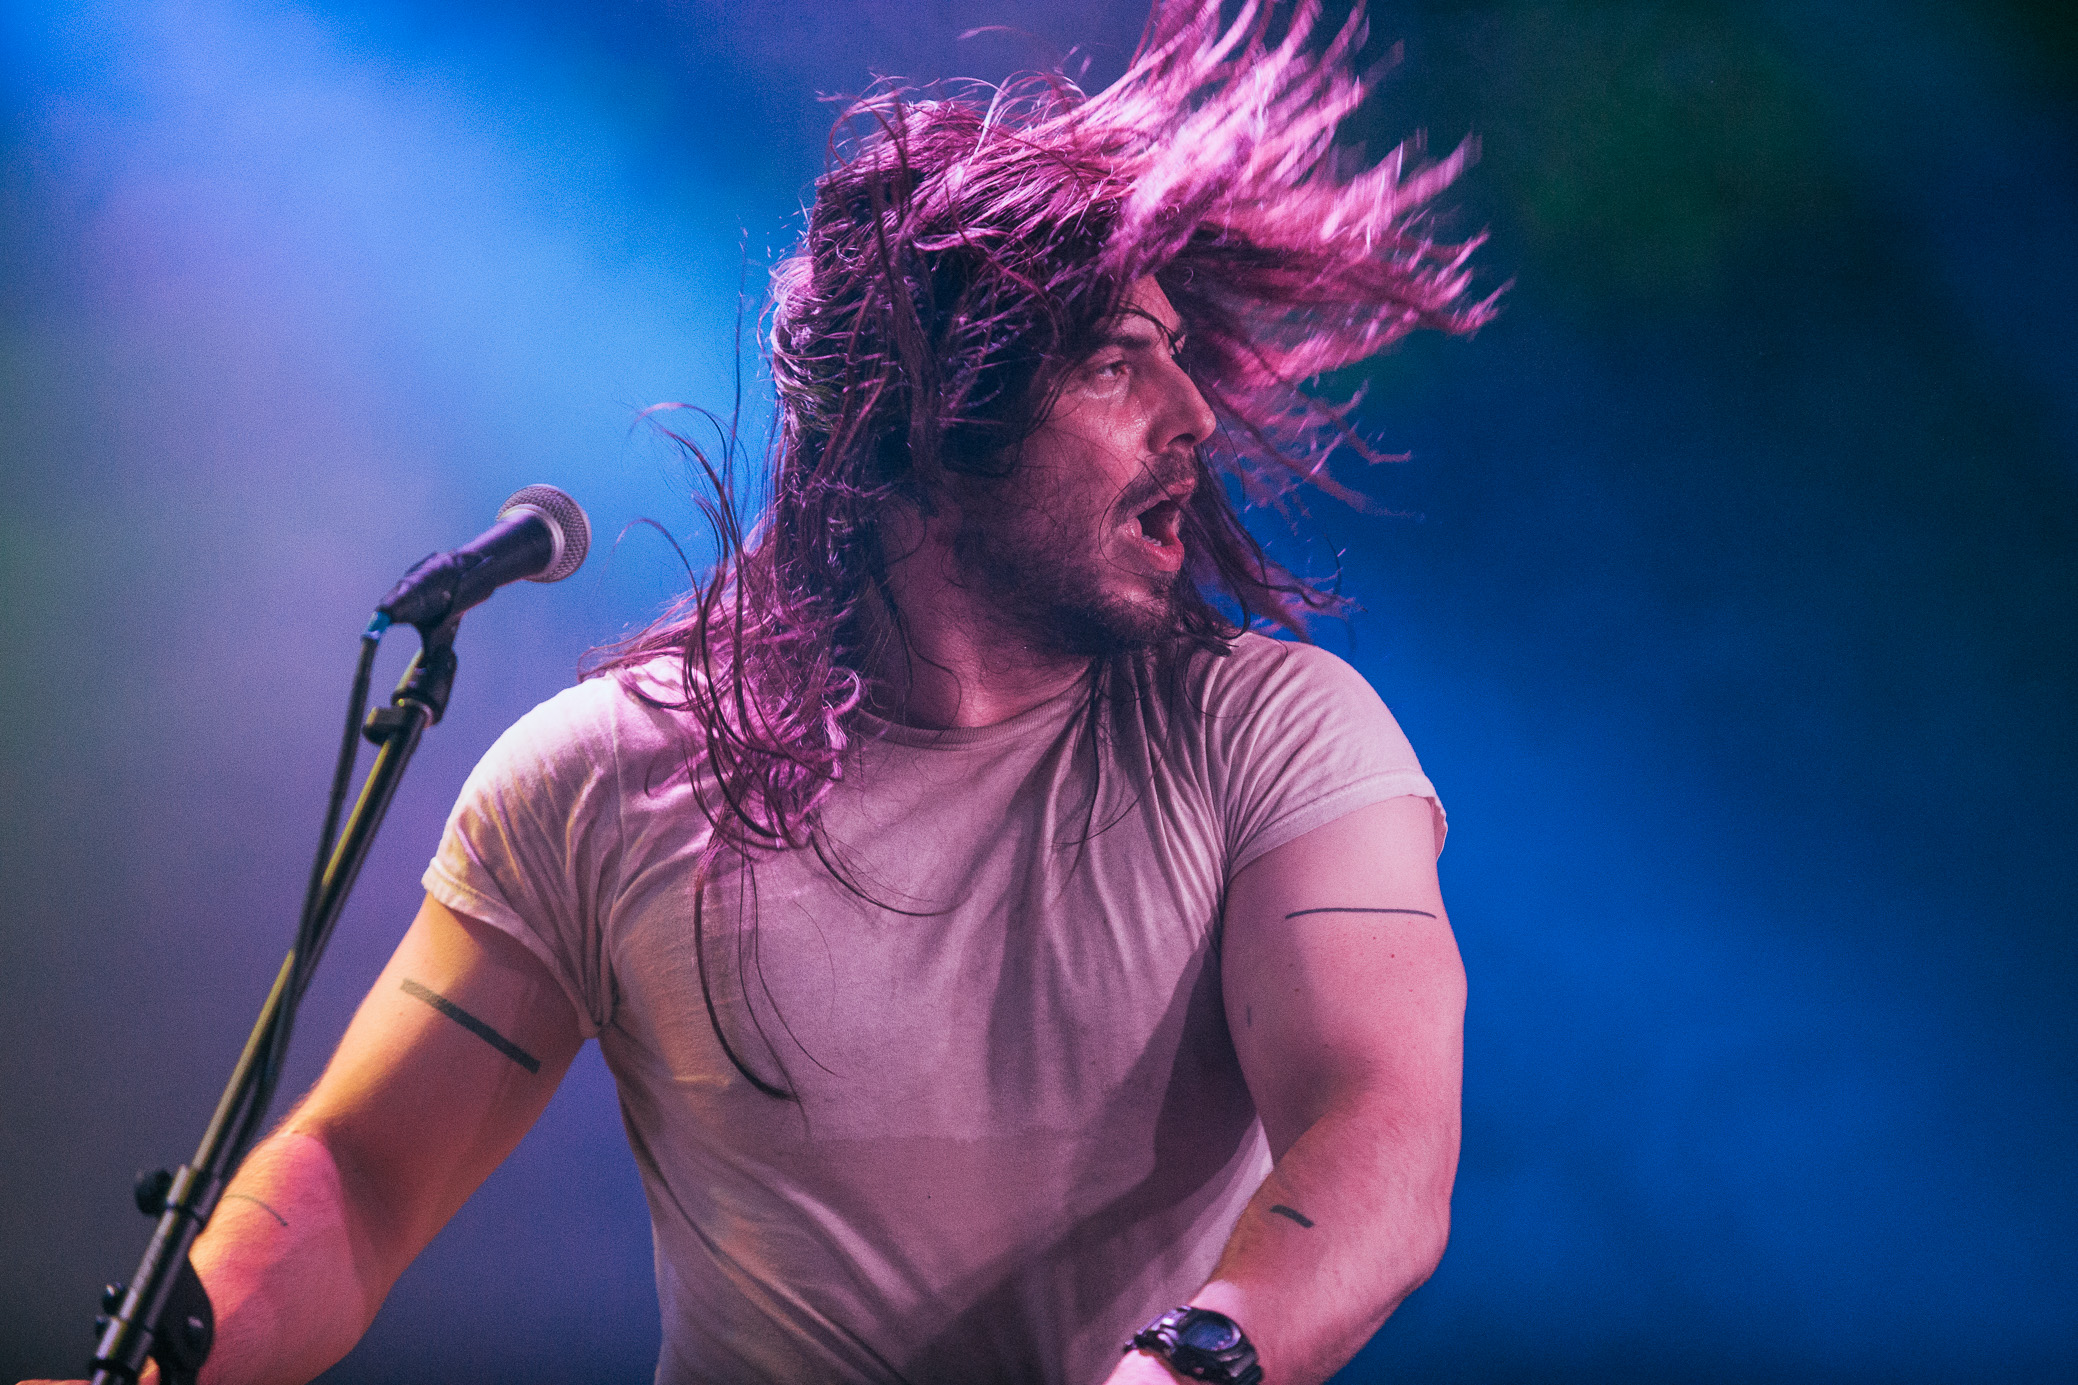 Andrew W.K. performs at Saturn Birmingham in Birmingham, Alabama on September 15th, 2015.   (Photo by David A. Smith/DSmithScenes)